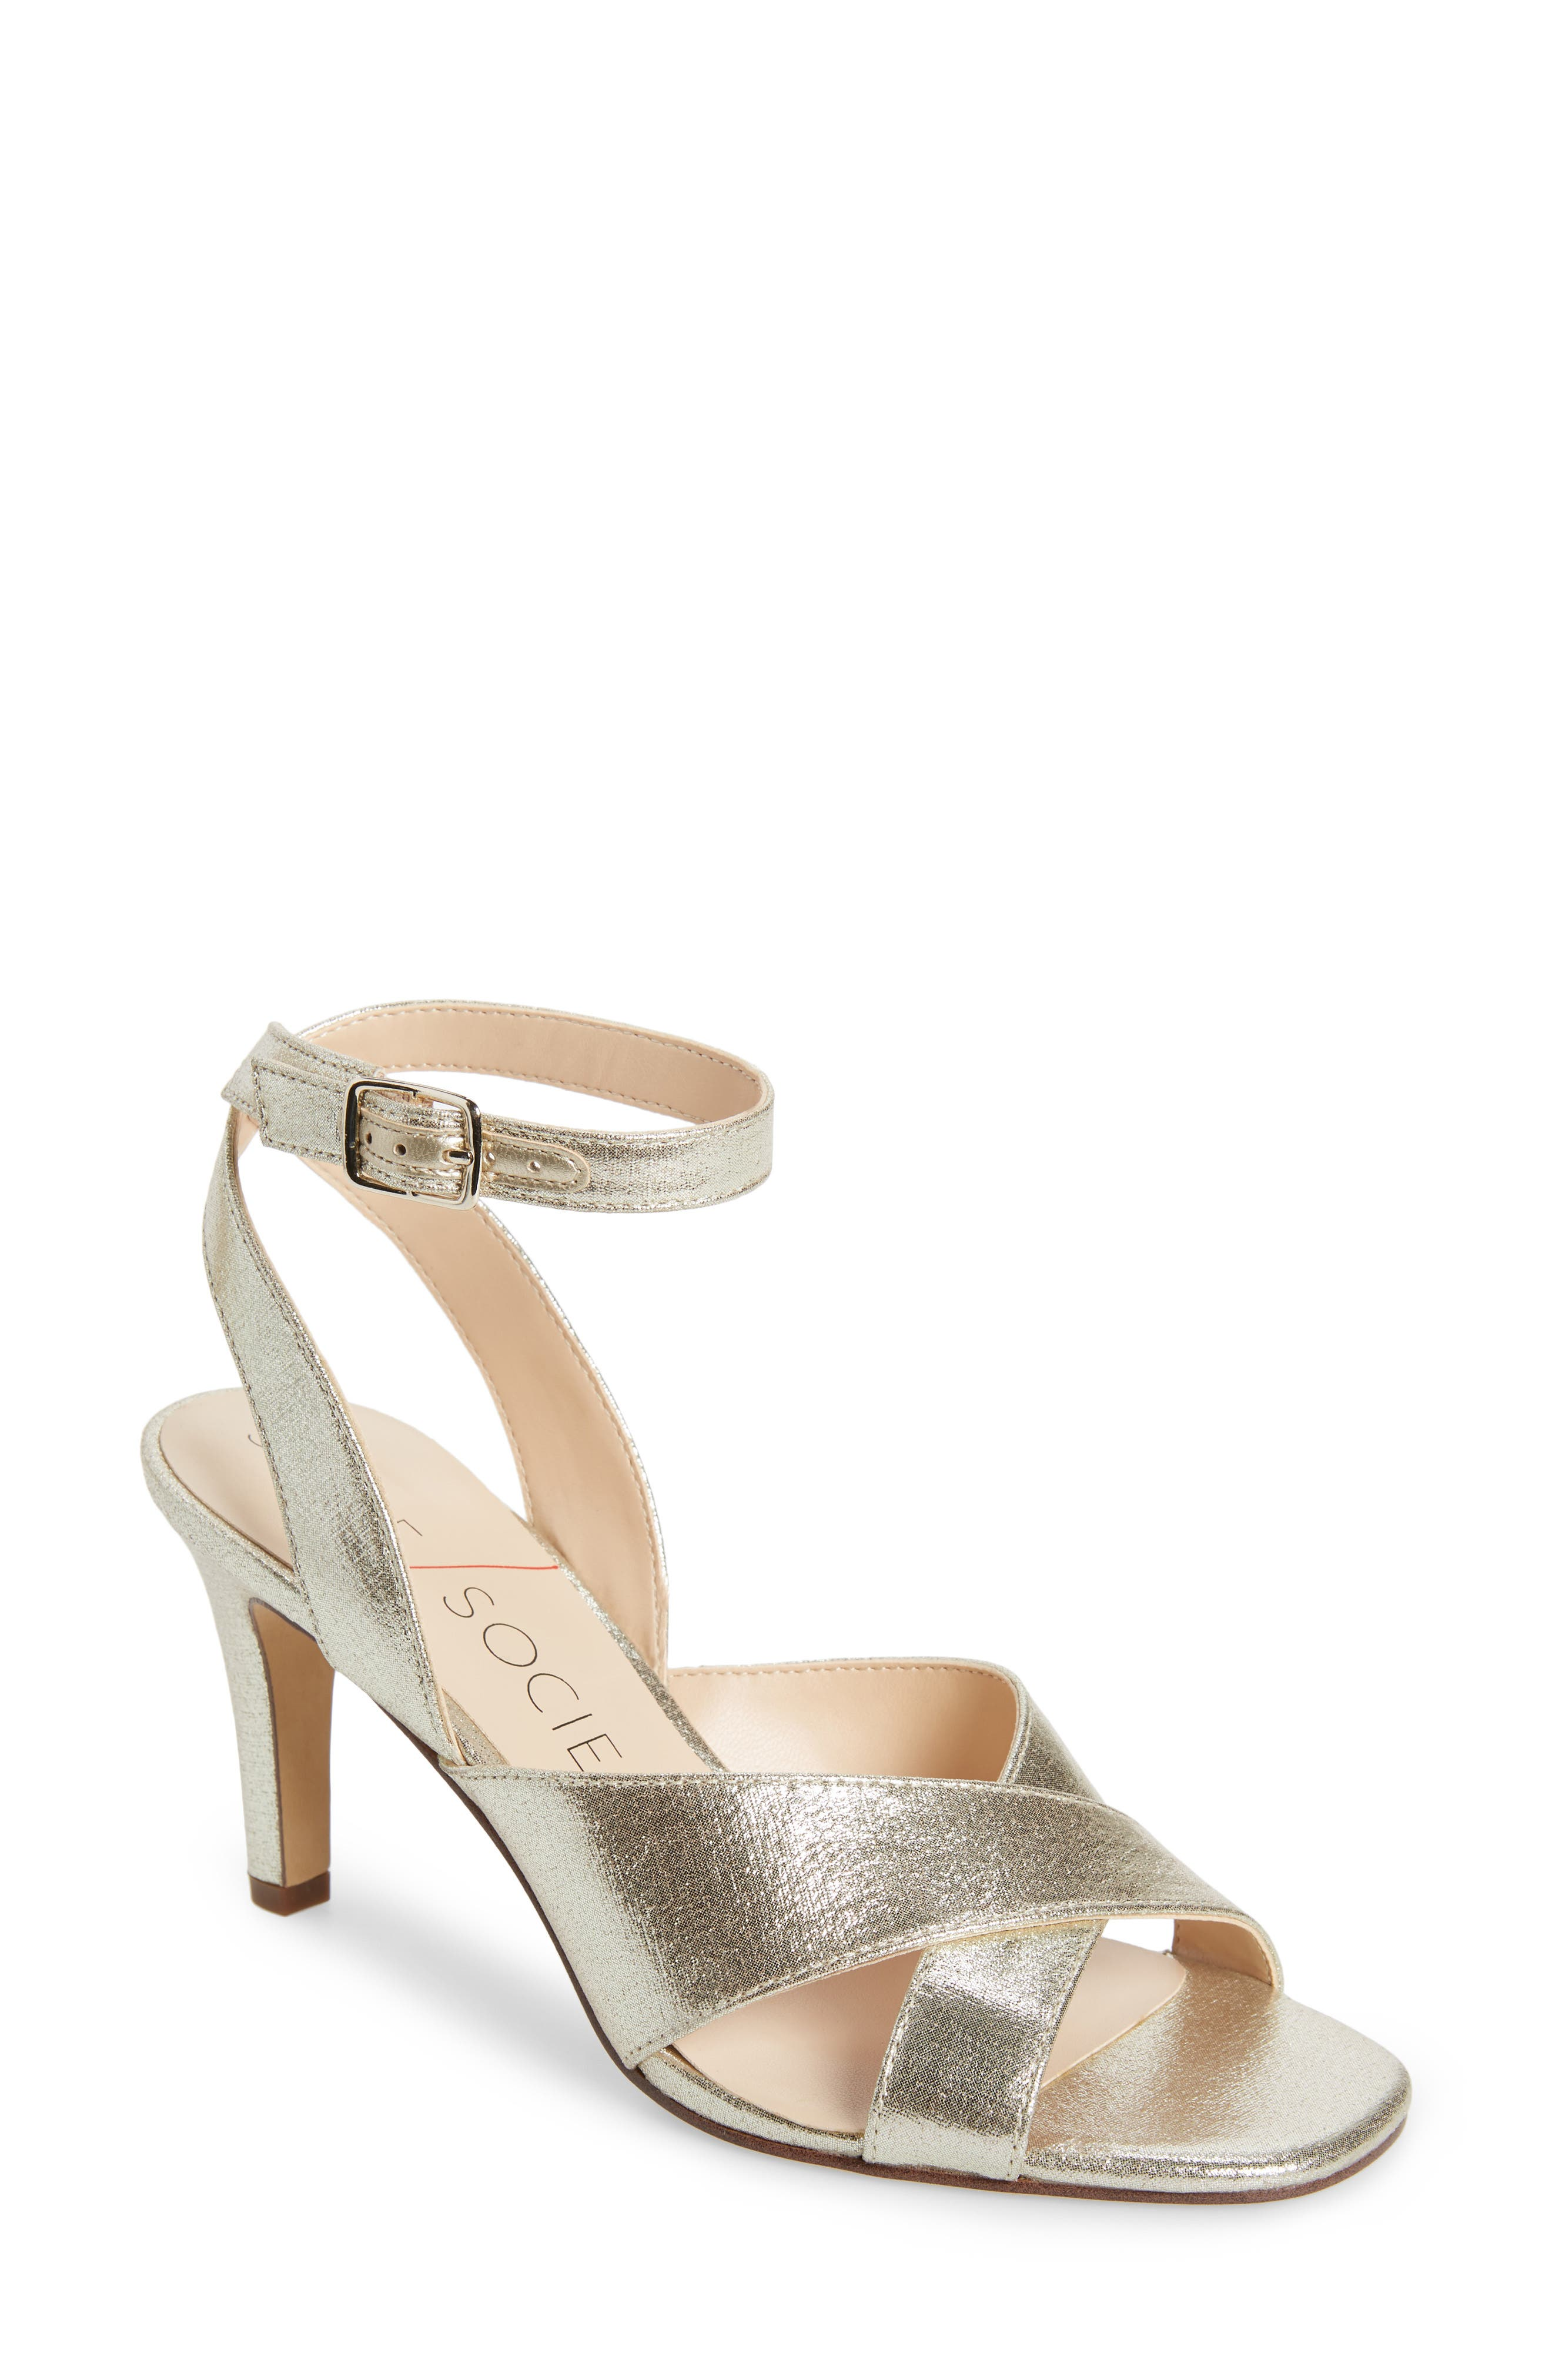 Sole Society Cassidea Ankle Strap Sandal, Metallic